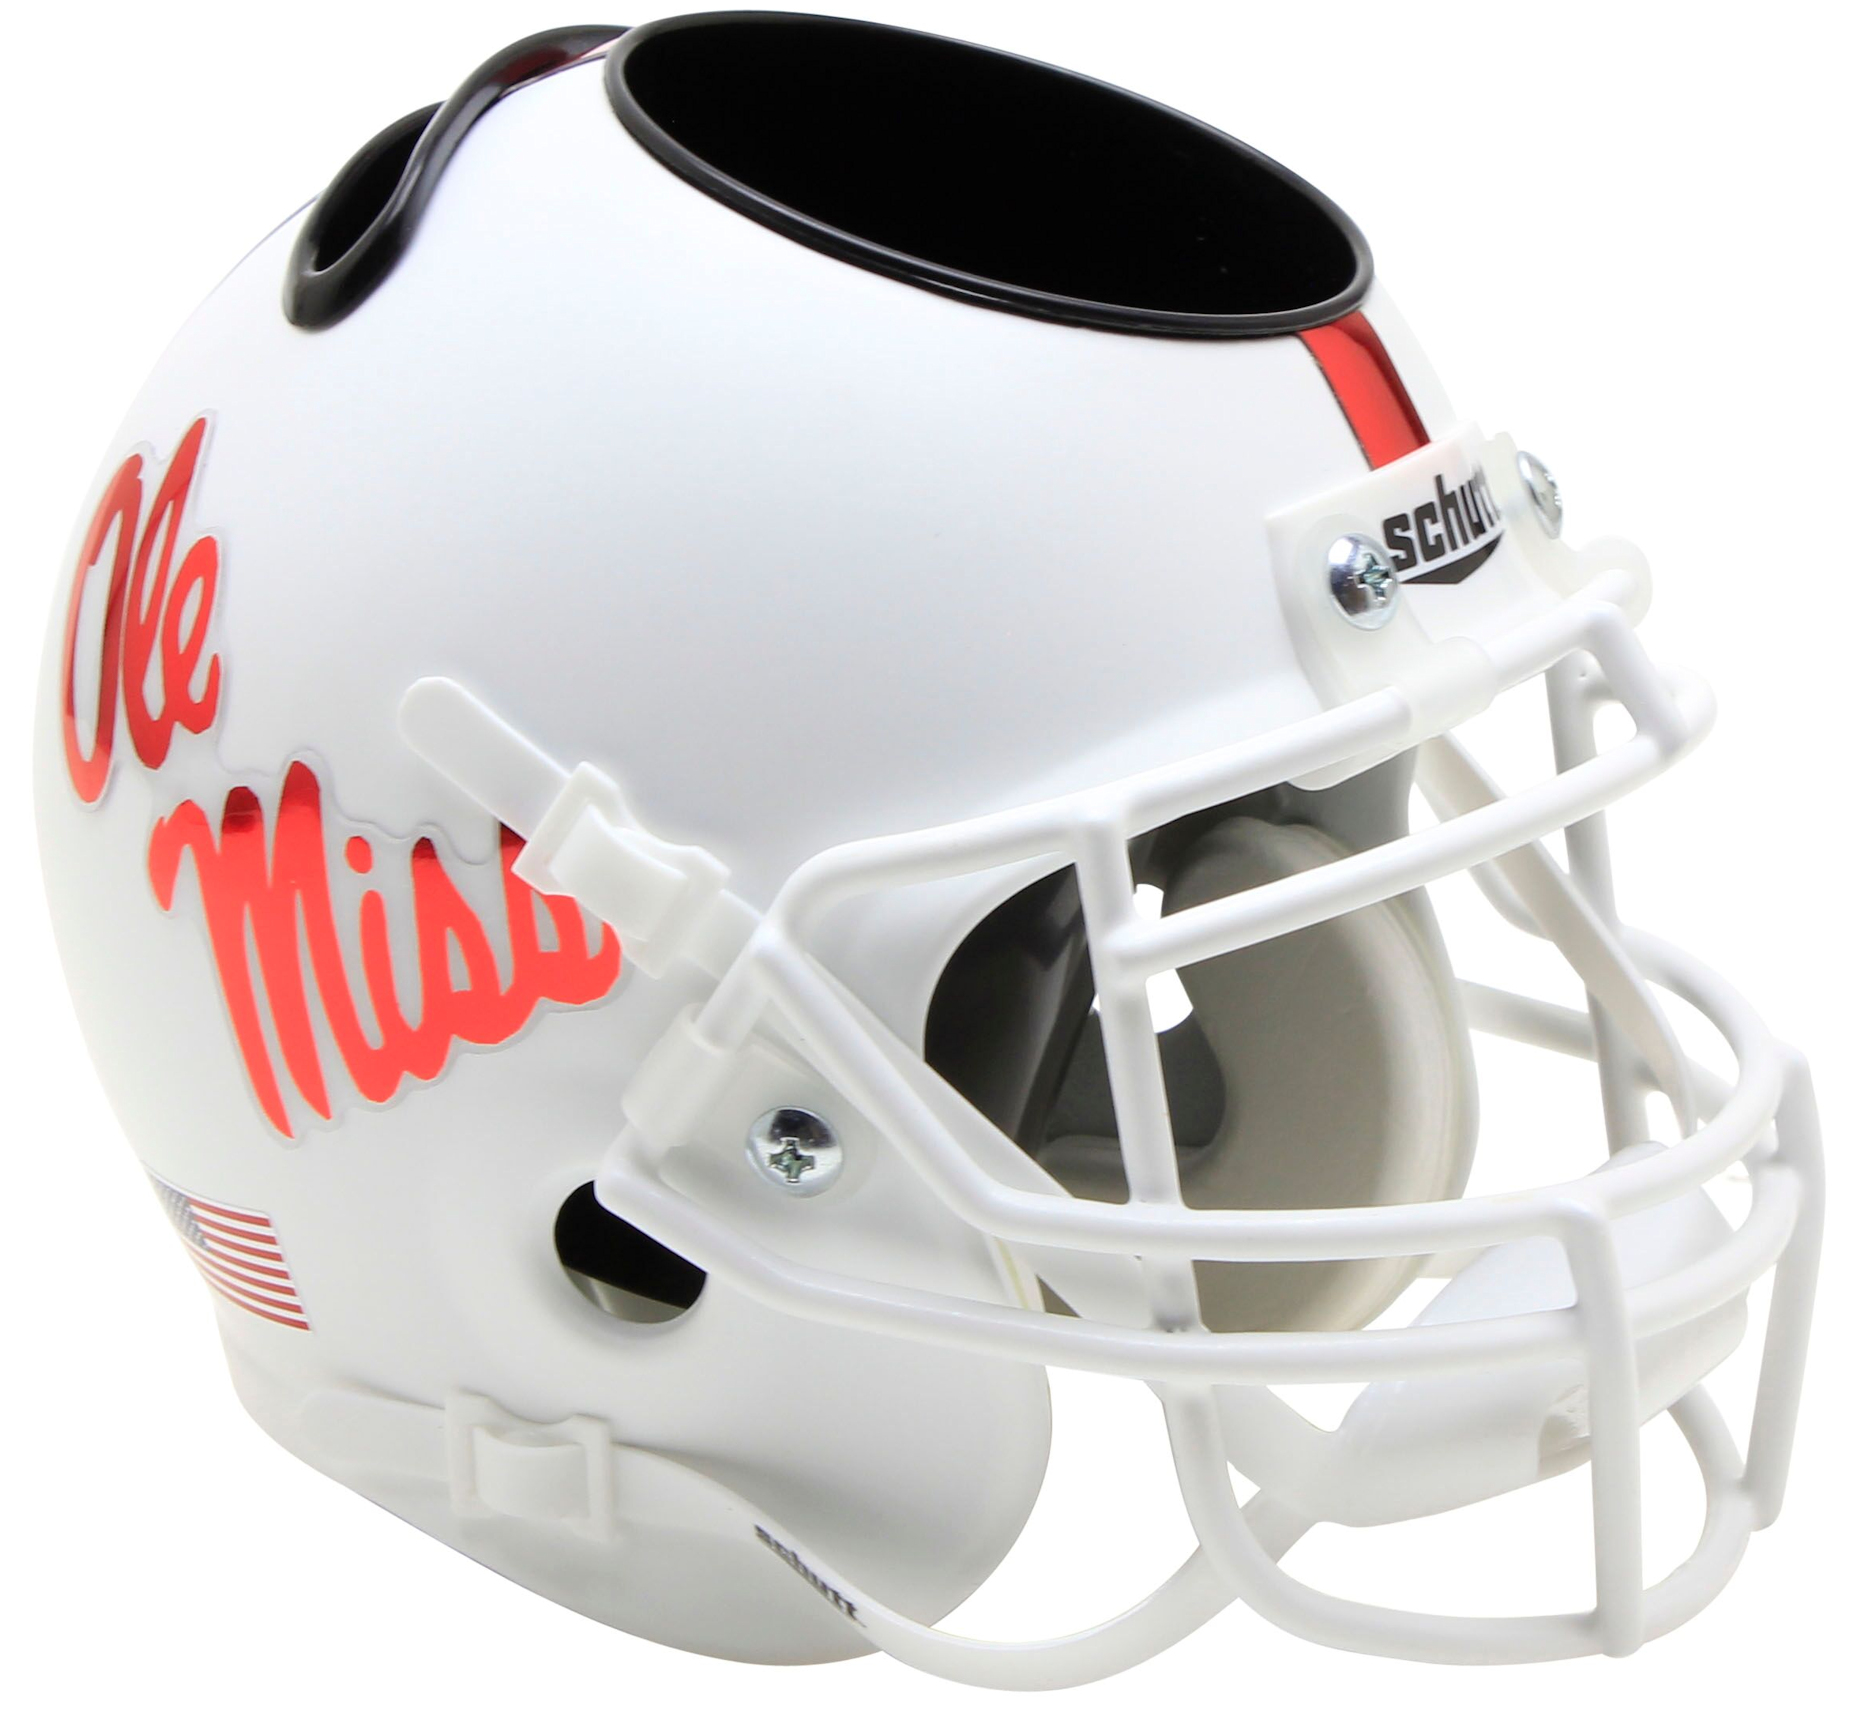 Mississippi (Ole Miss) Rebels Miniature Football Helmet Desk Caddy <B>White With Red Decal</B>